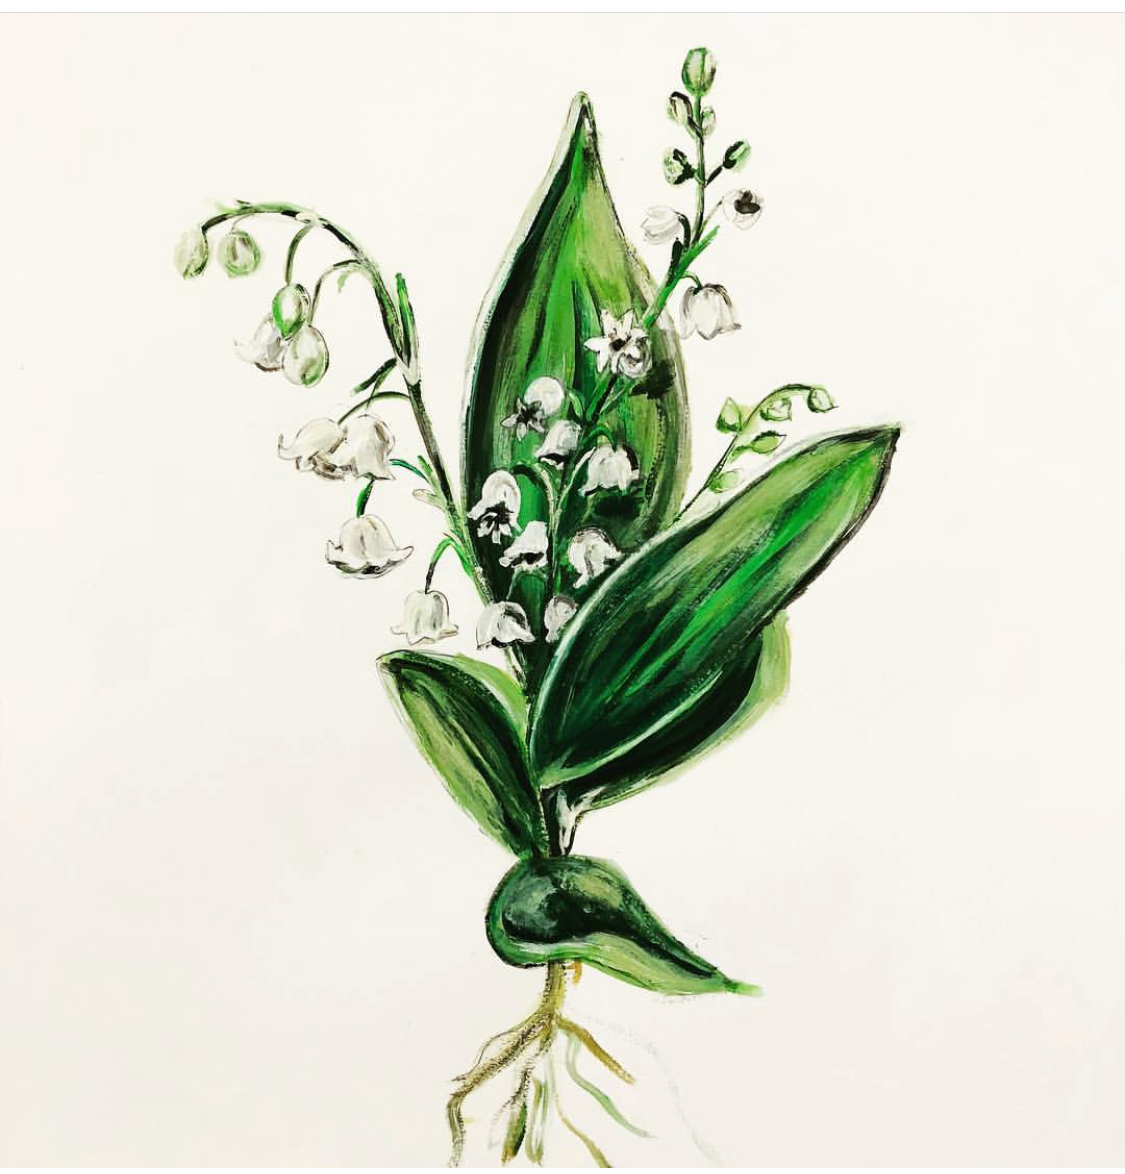 Lilly of the Valley , acrylic on paper | by Mary Margaret Monsees, photo courtesy of her Instagram,  @mstudio